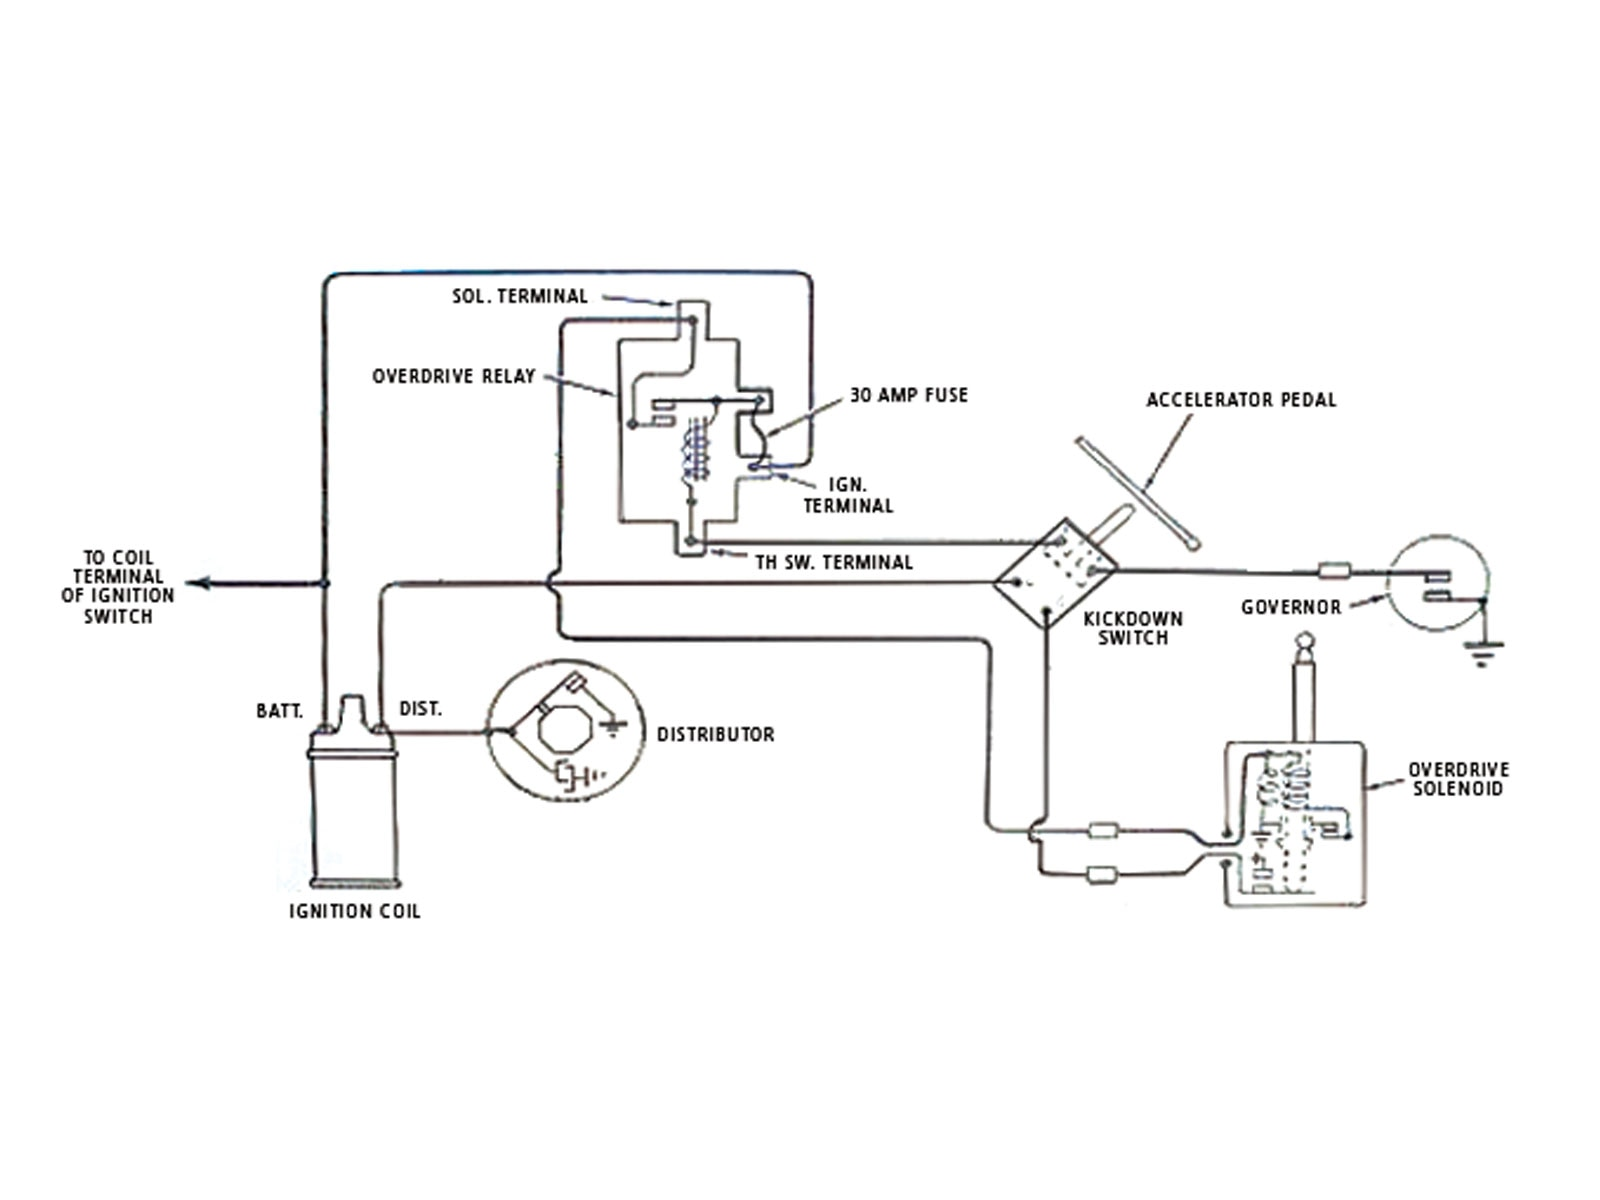 tr6 overdrive wiring diagram tr6 transmission diagram